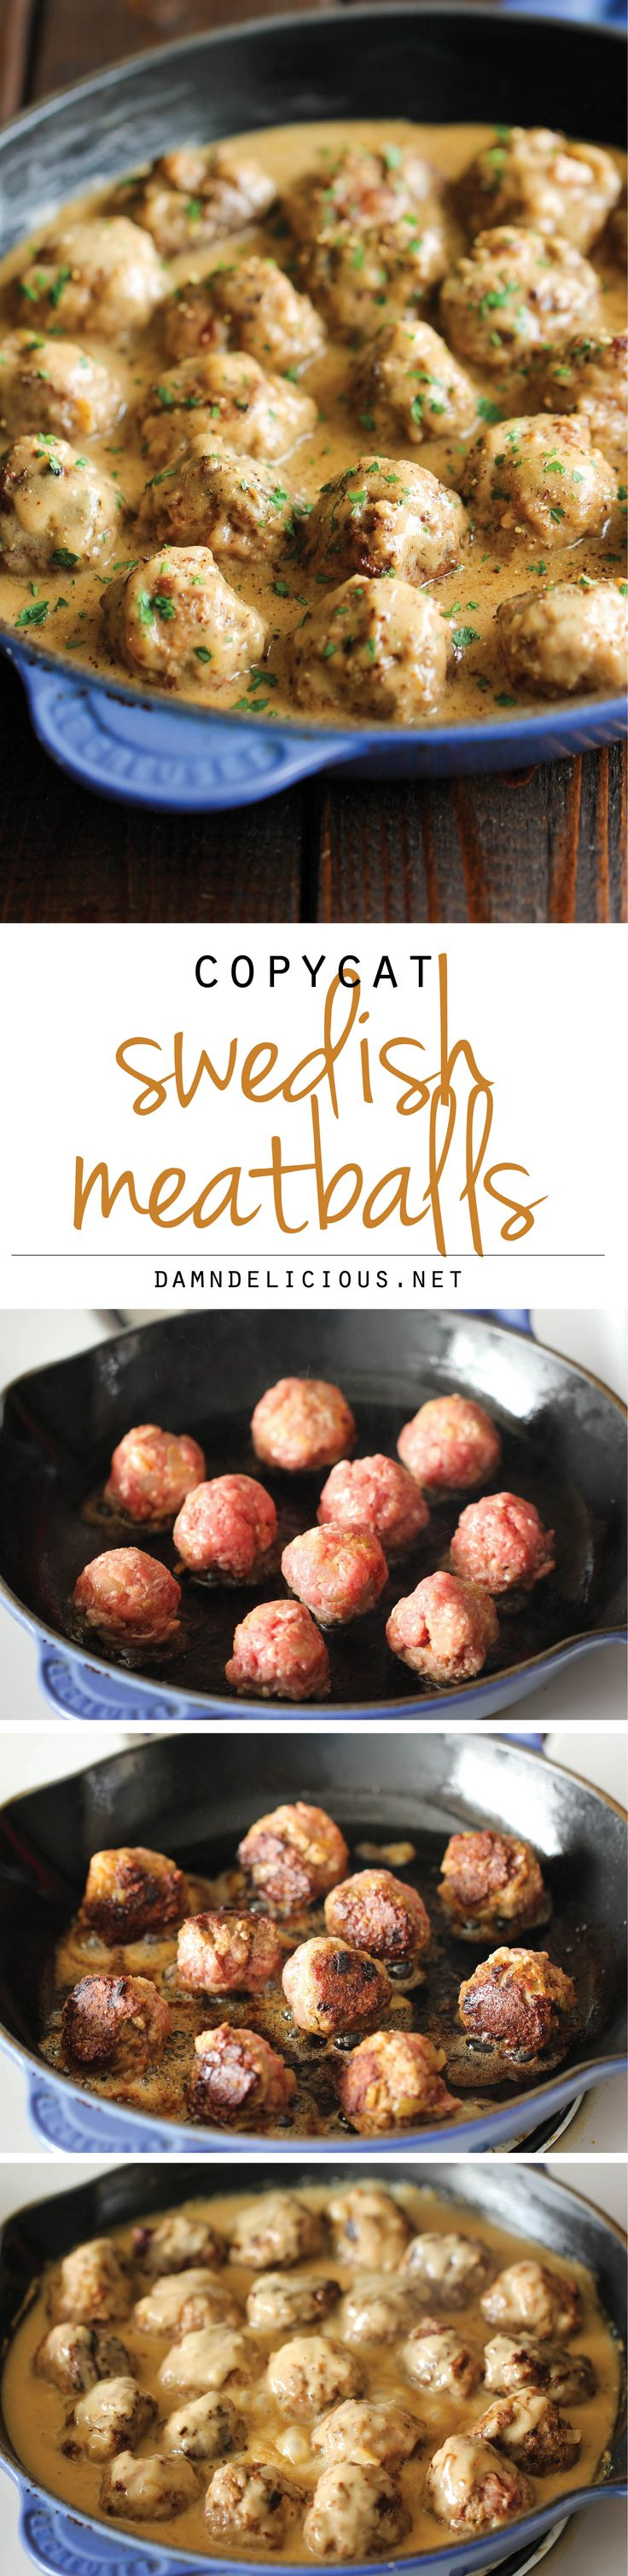 Swedish Meatballs - Nothing beats homemade meatballs smothered in a creamy gravy sauce, and they taste much better than the IKEA version! @damndelicious